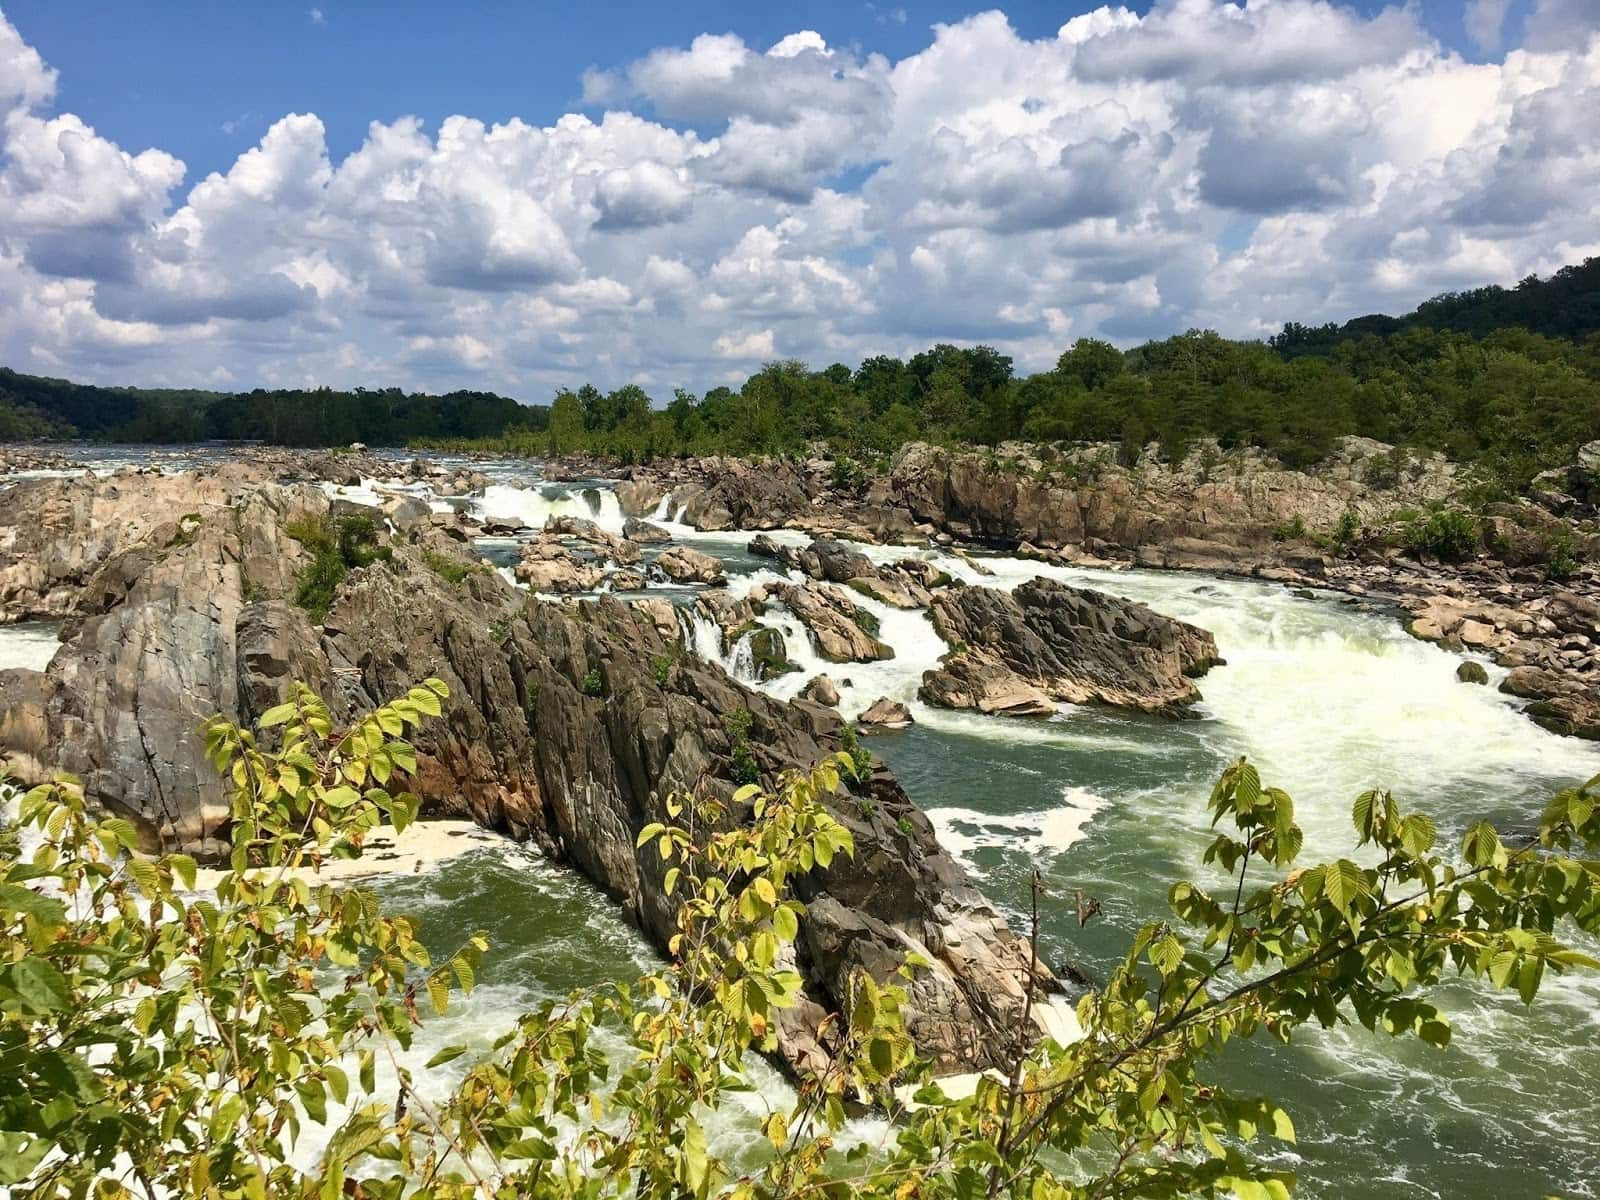 Great Falls Overlook // Looking for the best hikes in Maryland? Here are our 7 favorite Maryland trails including distances, descriptions, and local tips.